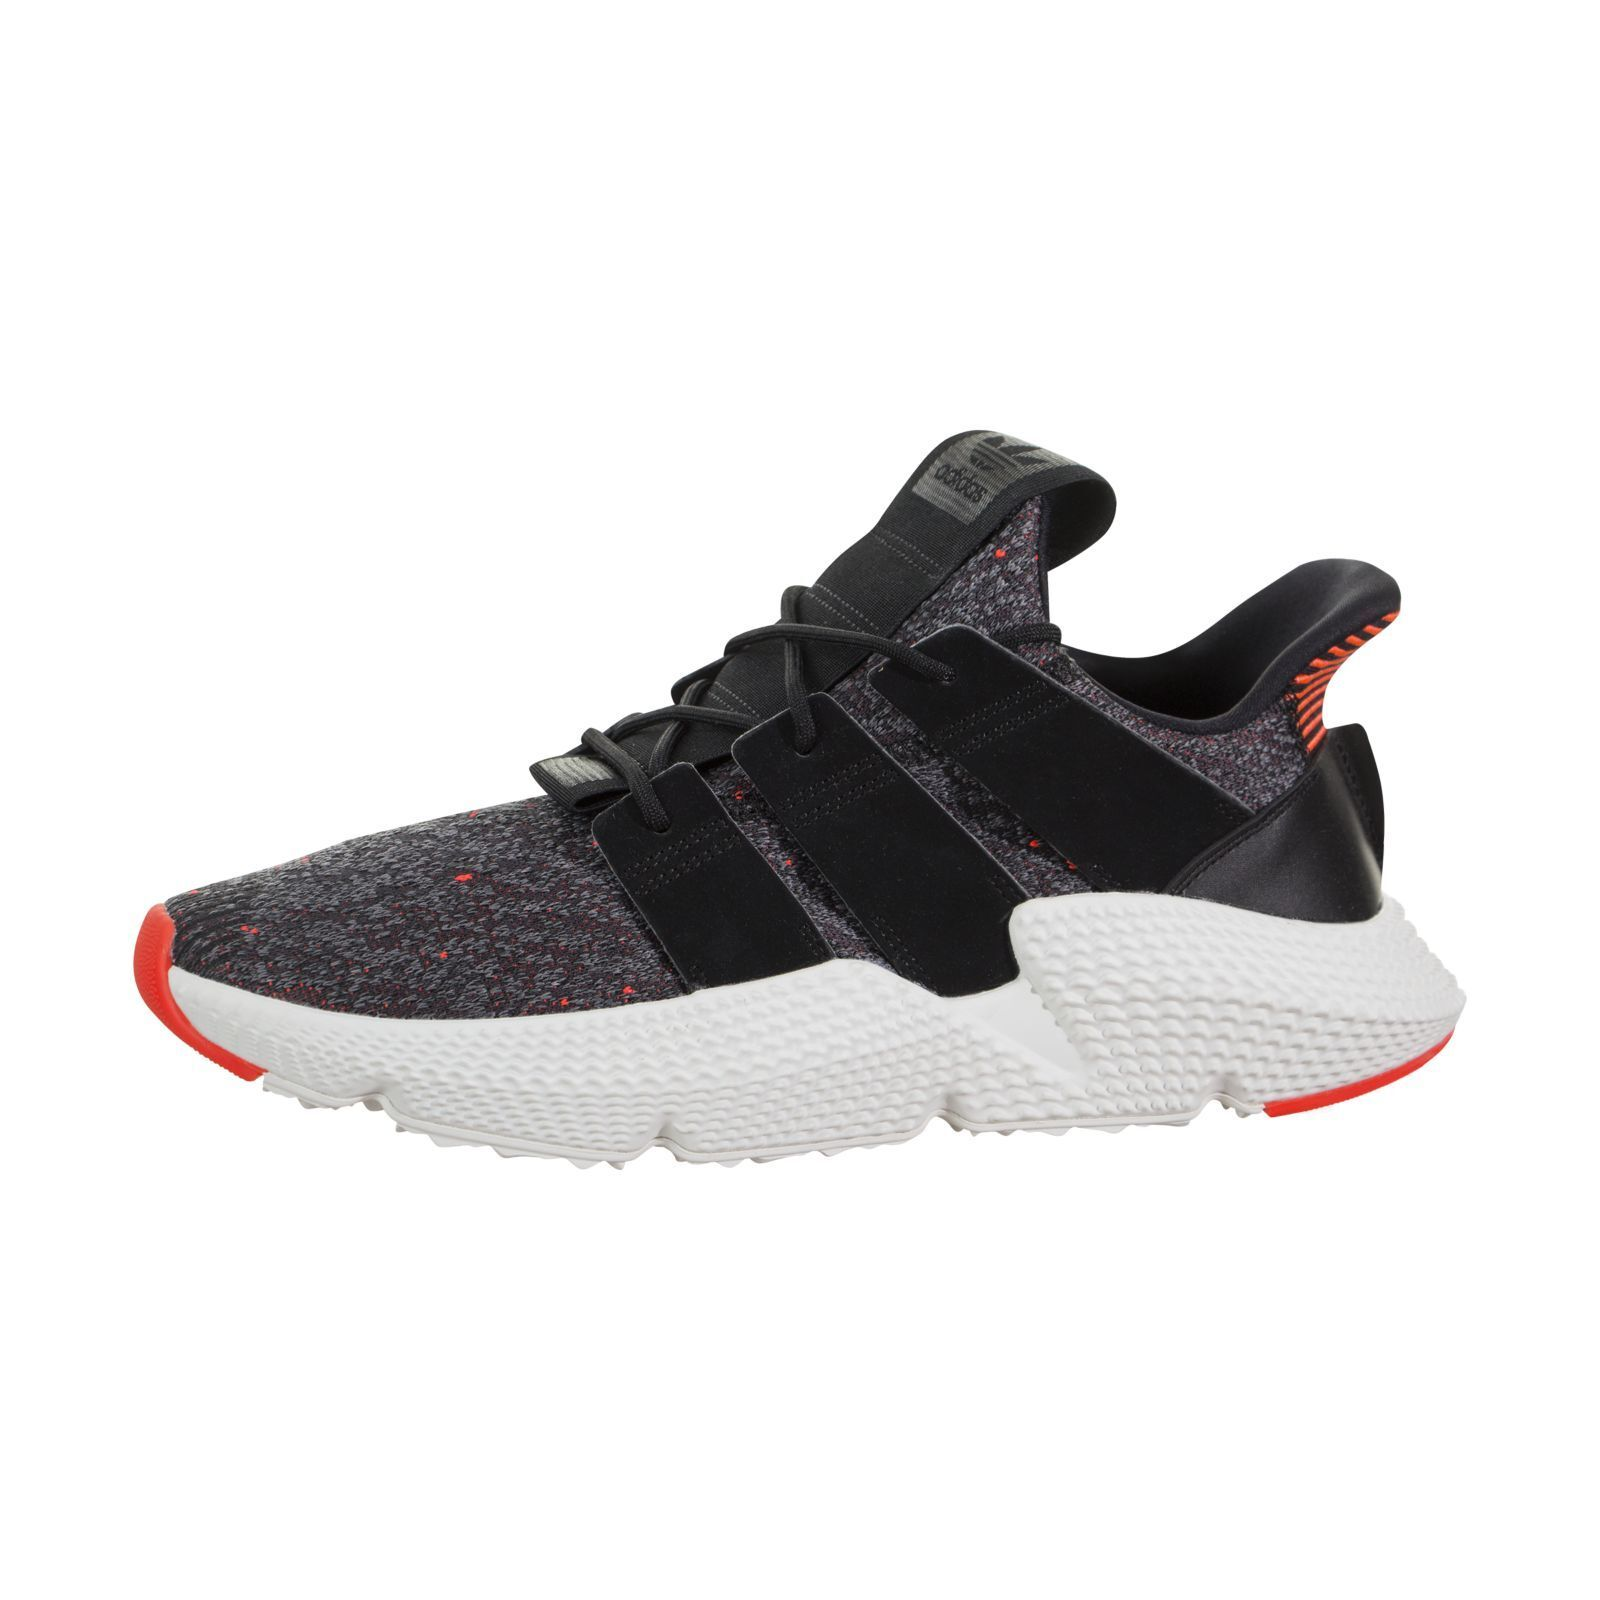 Cheap Nice Adidas Prophere on the sale